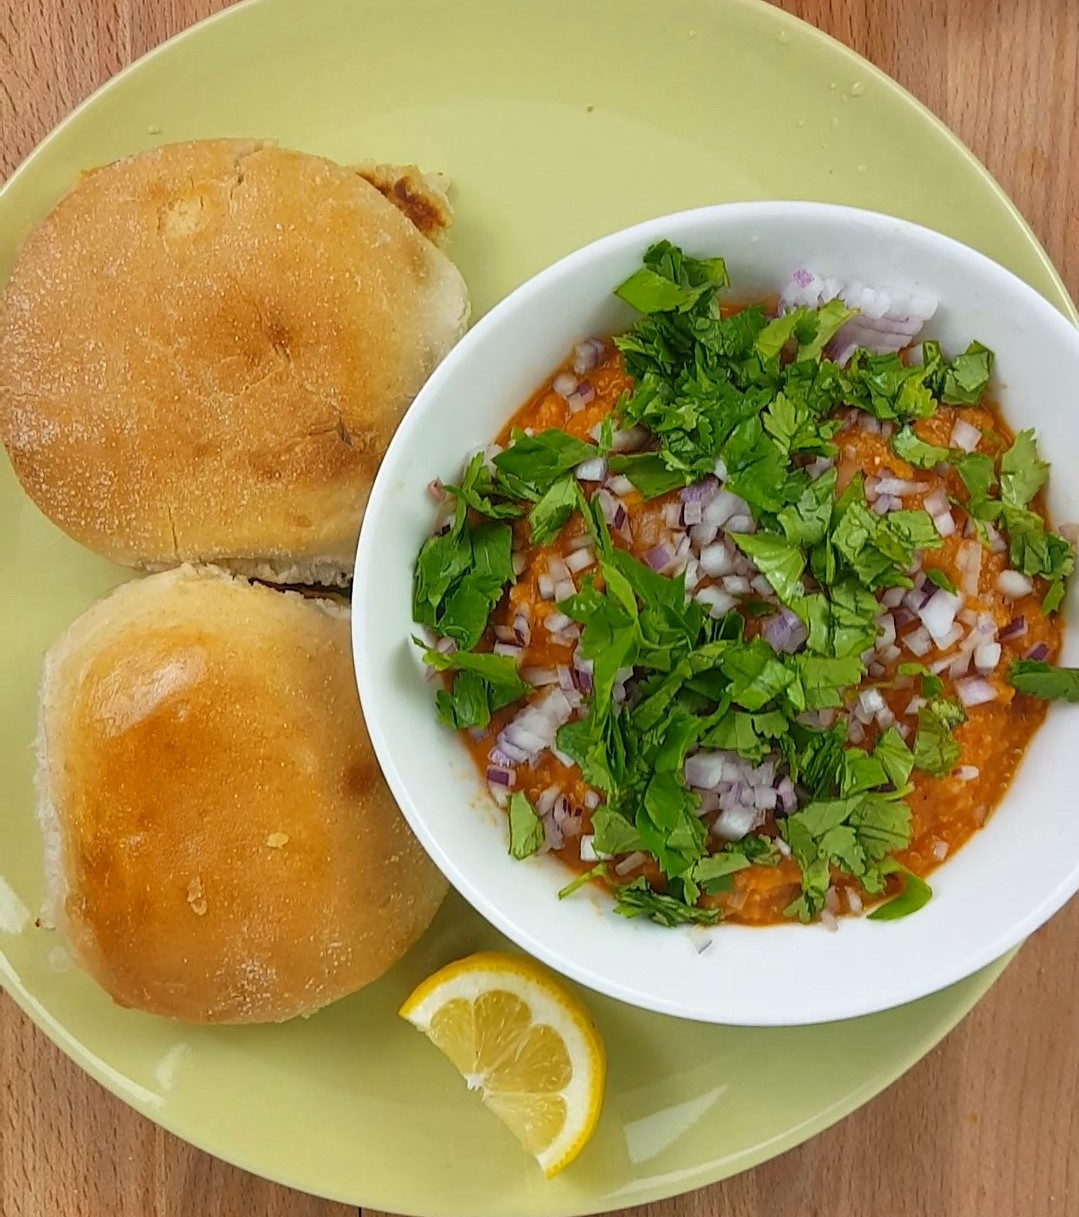 Pav bhaji recipe with video vegetarian indian recipes indian pav bhaji recipe with video vegetarian indian recipes indian street food dontask4salt forumfinder Images